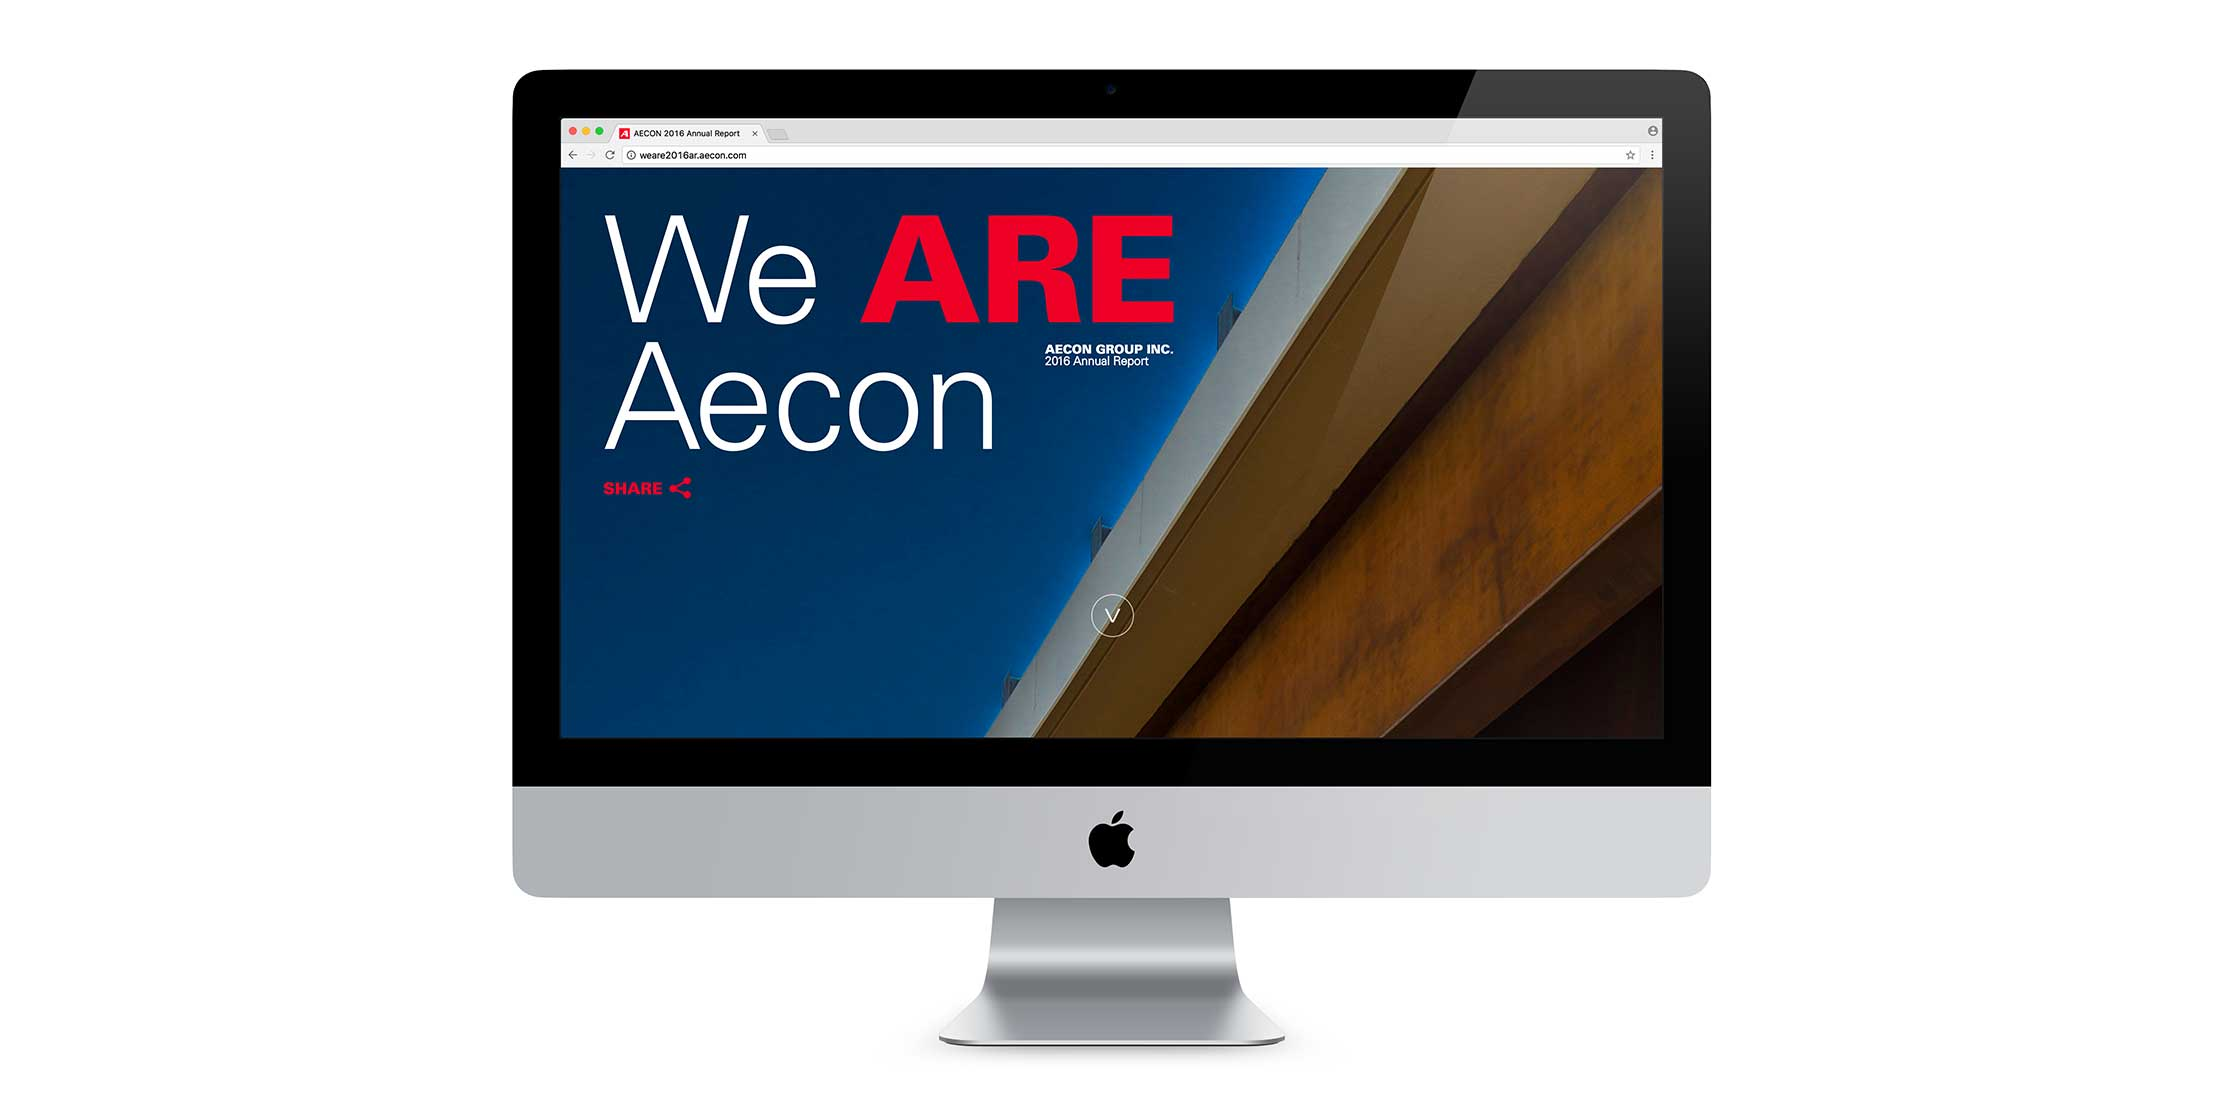 Interactive_AECON_2016_Annual_Report_01.jpg